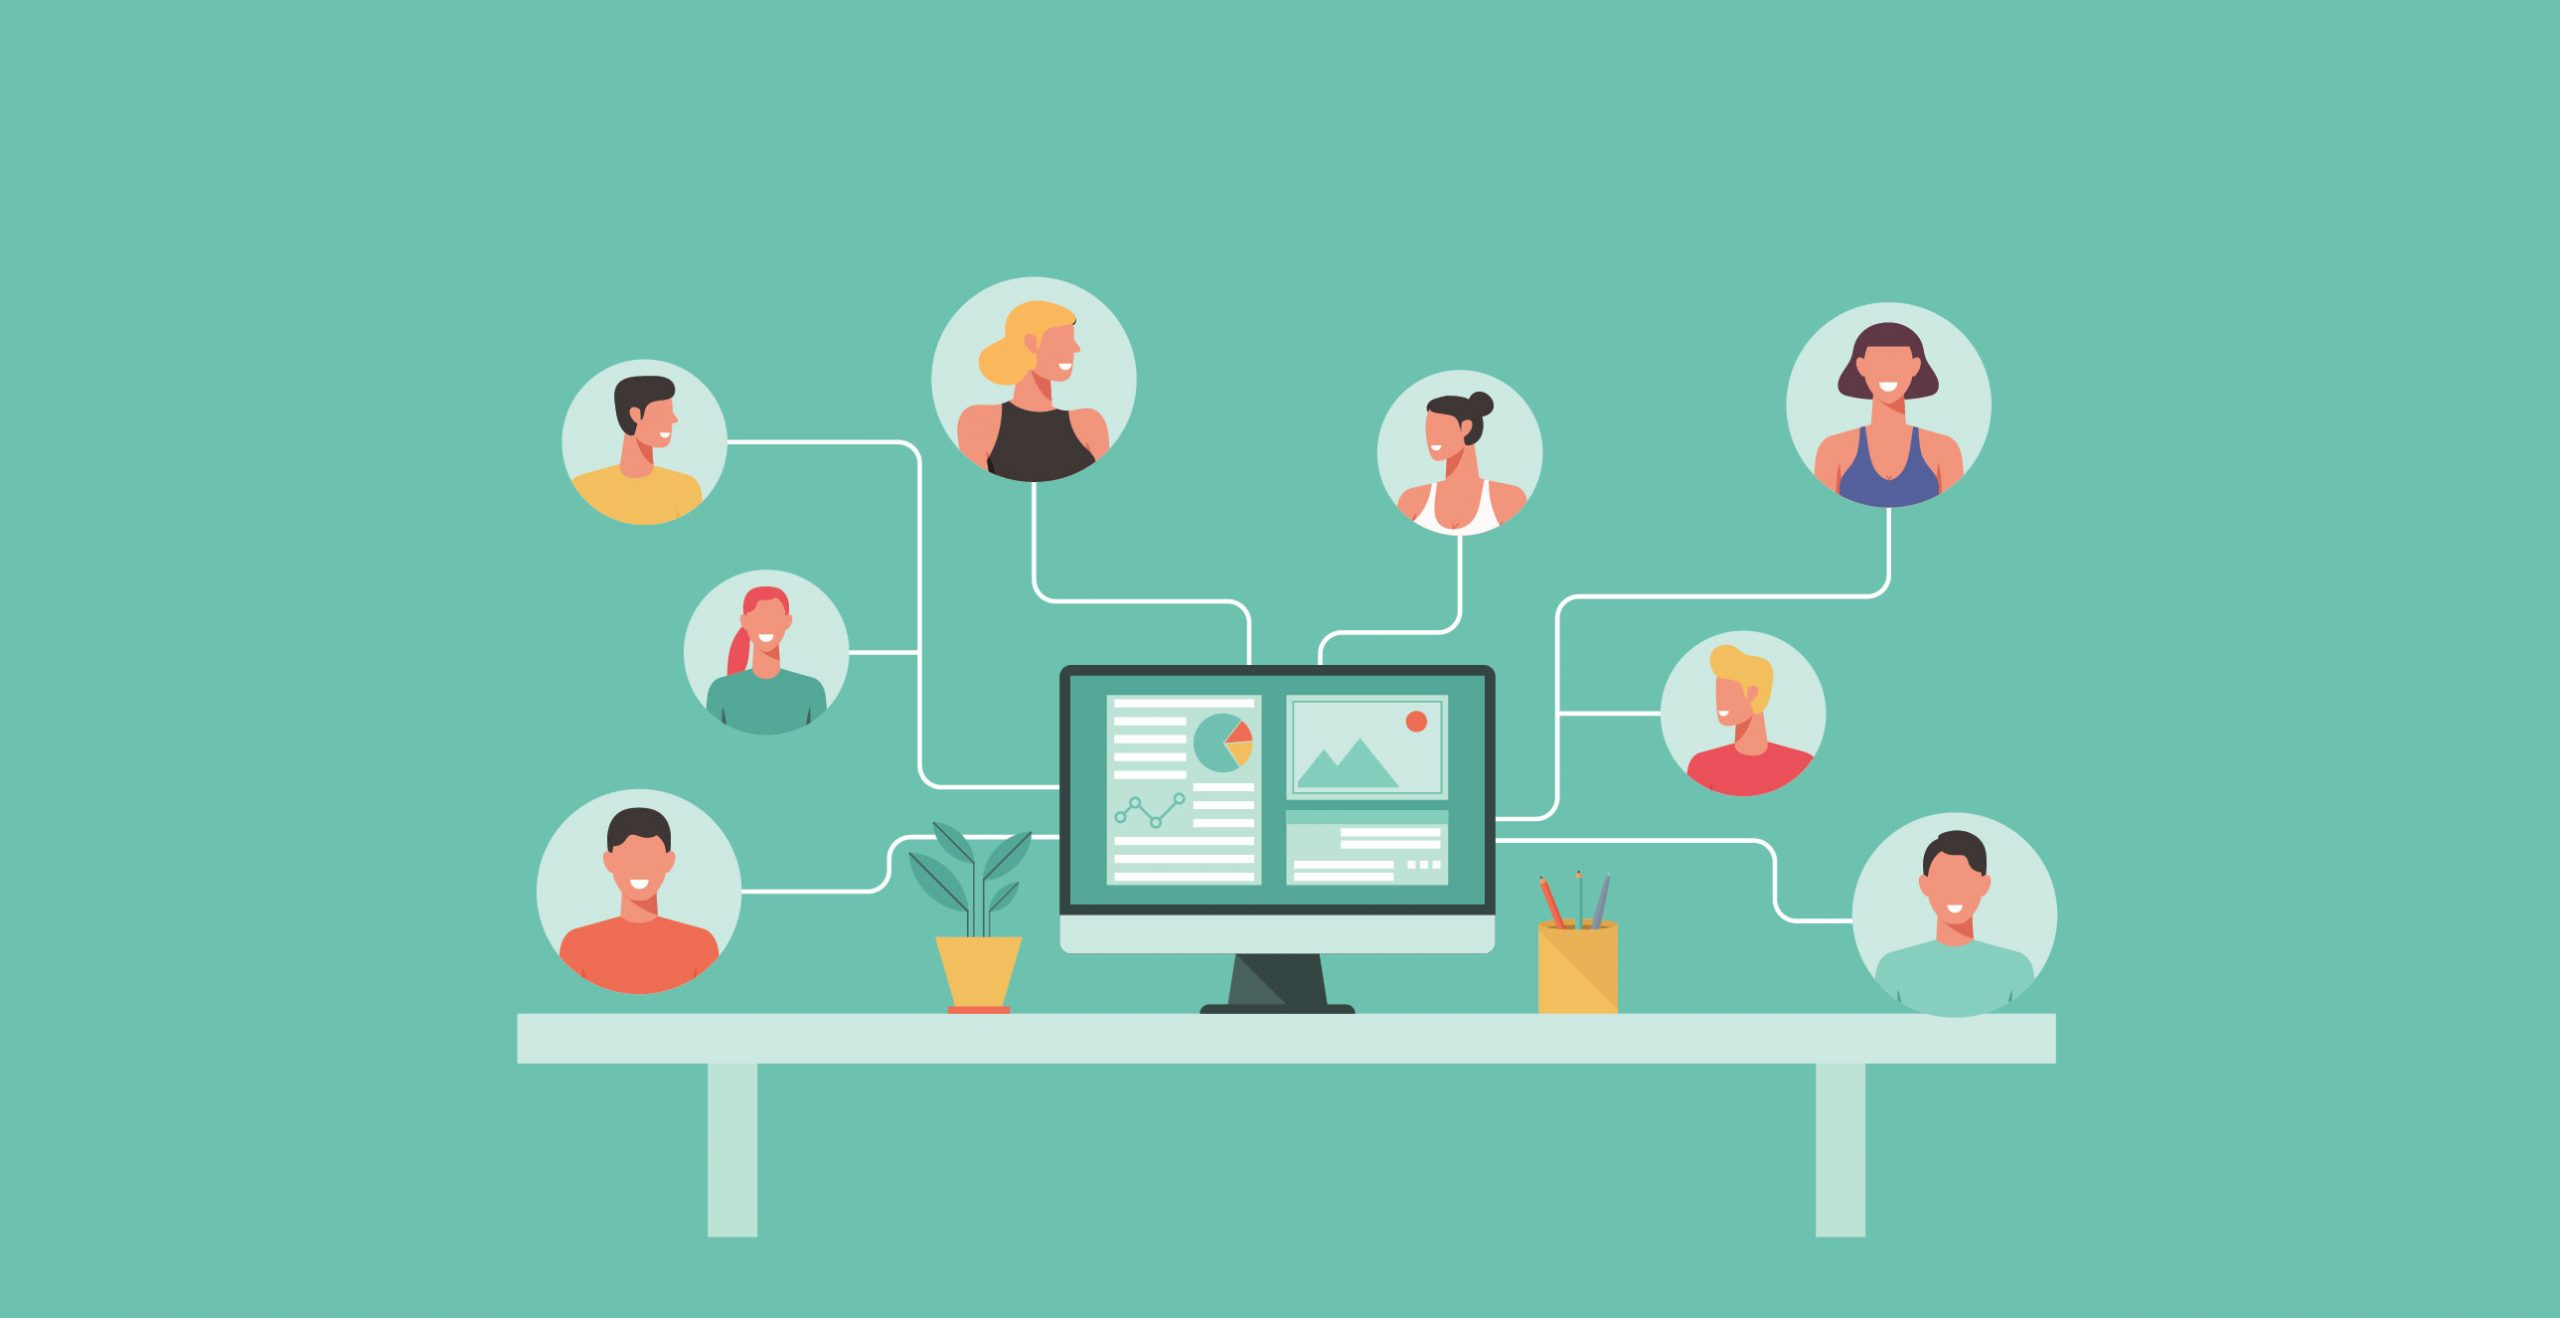 Interoffice Communication: Working Remotely a Challenge?